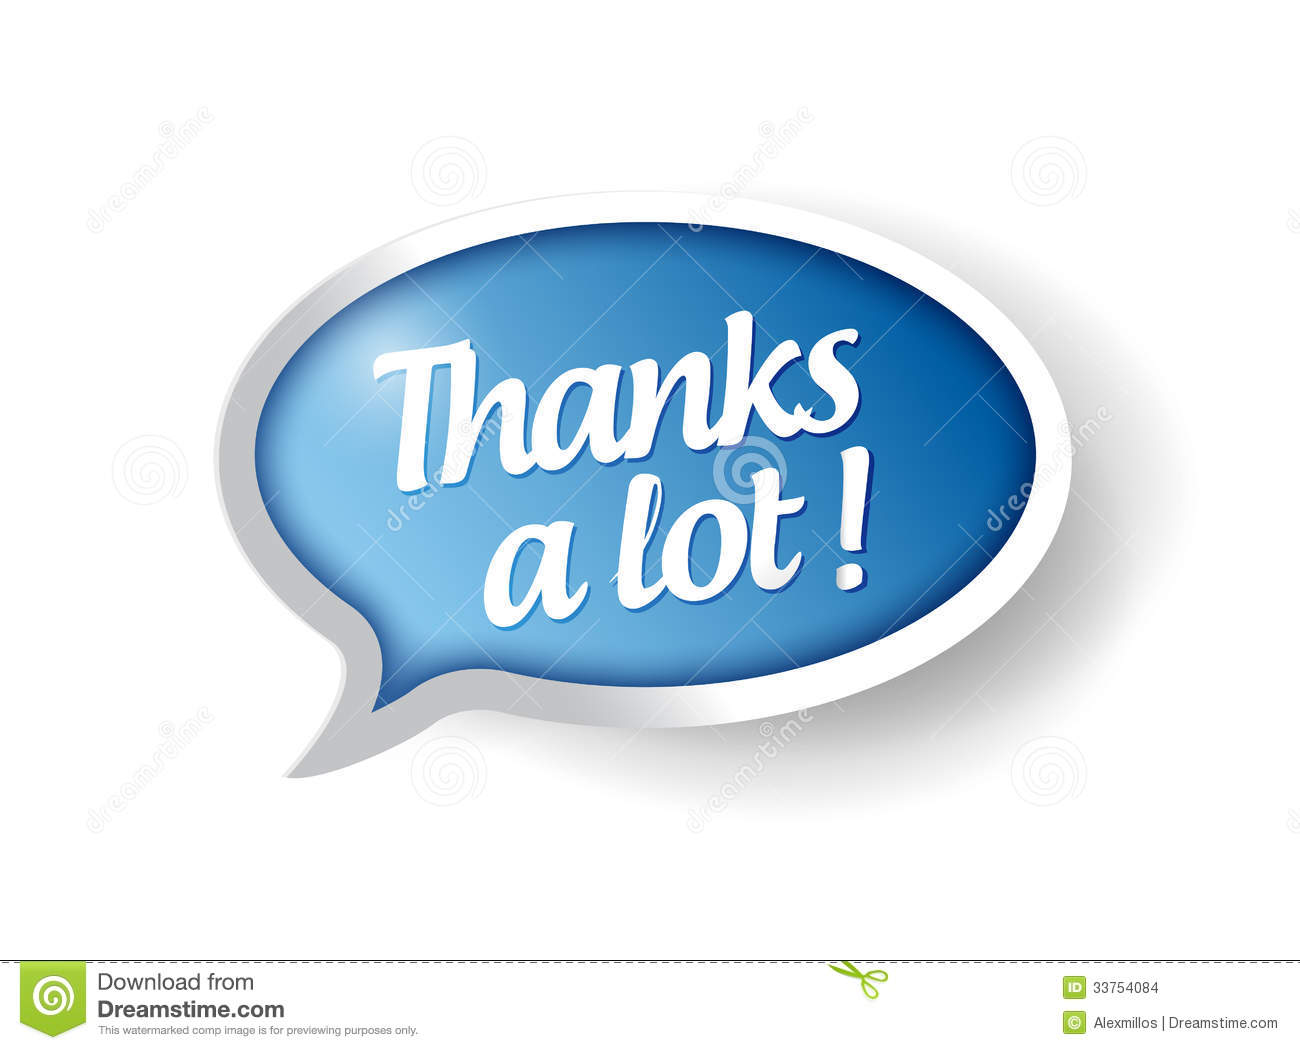 thanks a lot message bubble illustration stock images clipart flowers black and white borders clipart flowers black and white